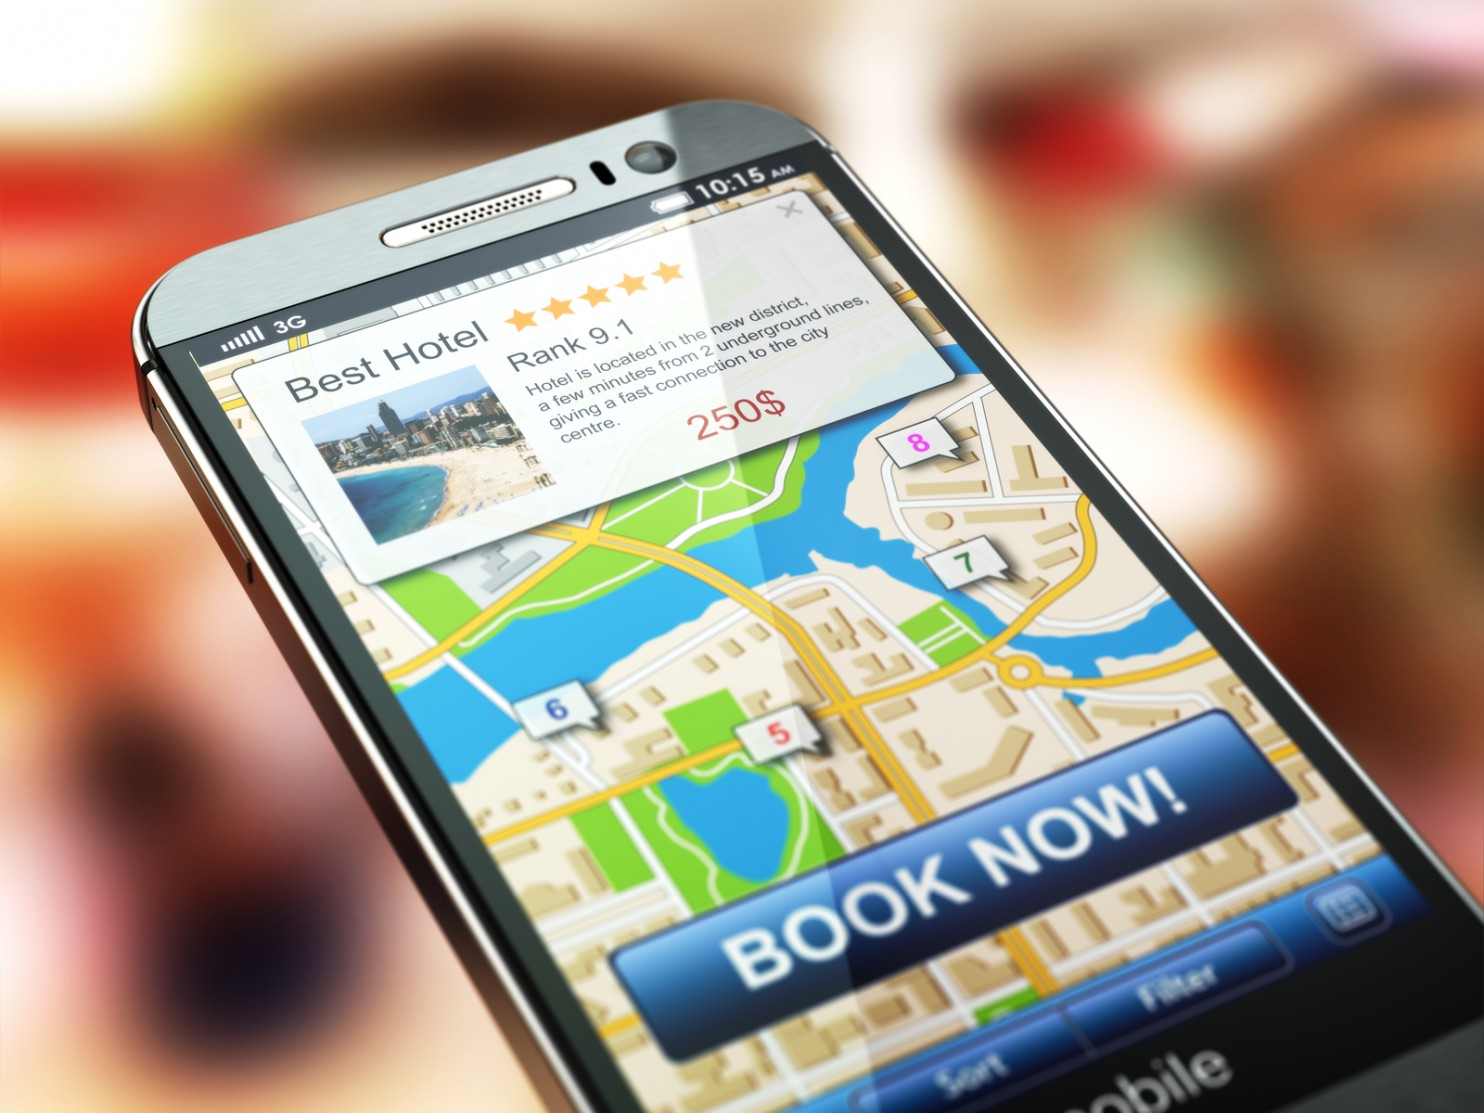 Online Travel Agents are dimmingt results on hotel searches